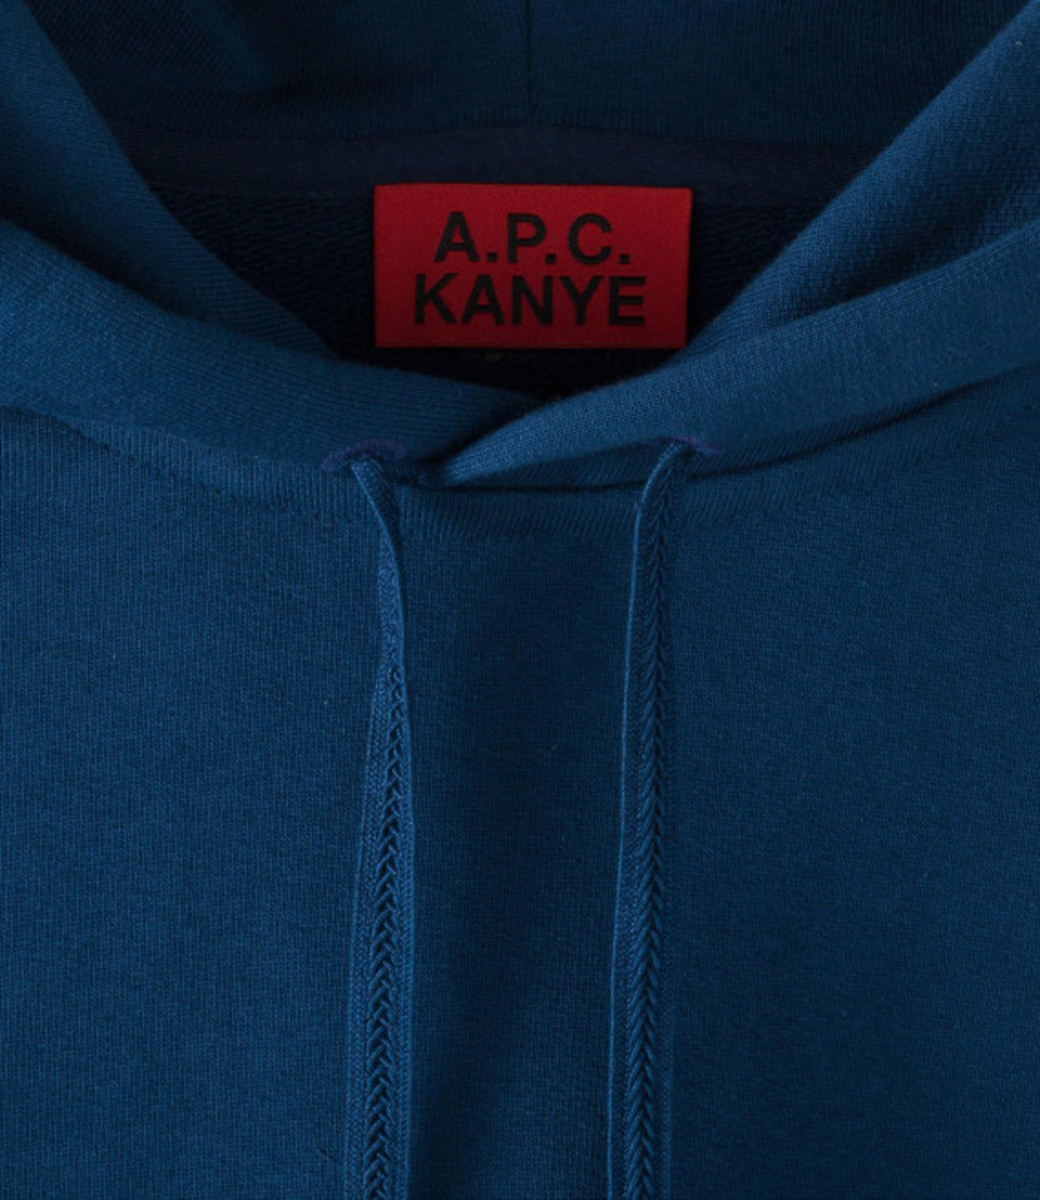 a-p-c-x-kanye-west-hooded-sweatshirt-navy-blue-04